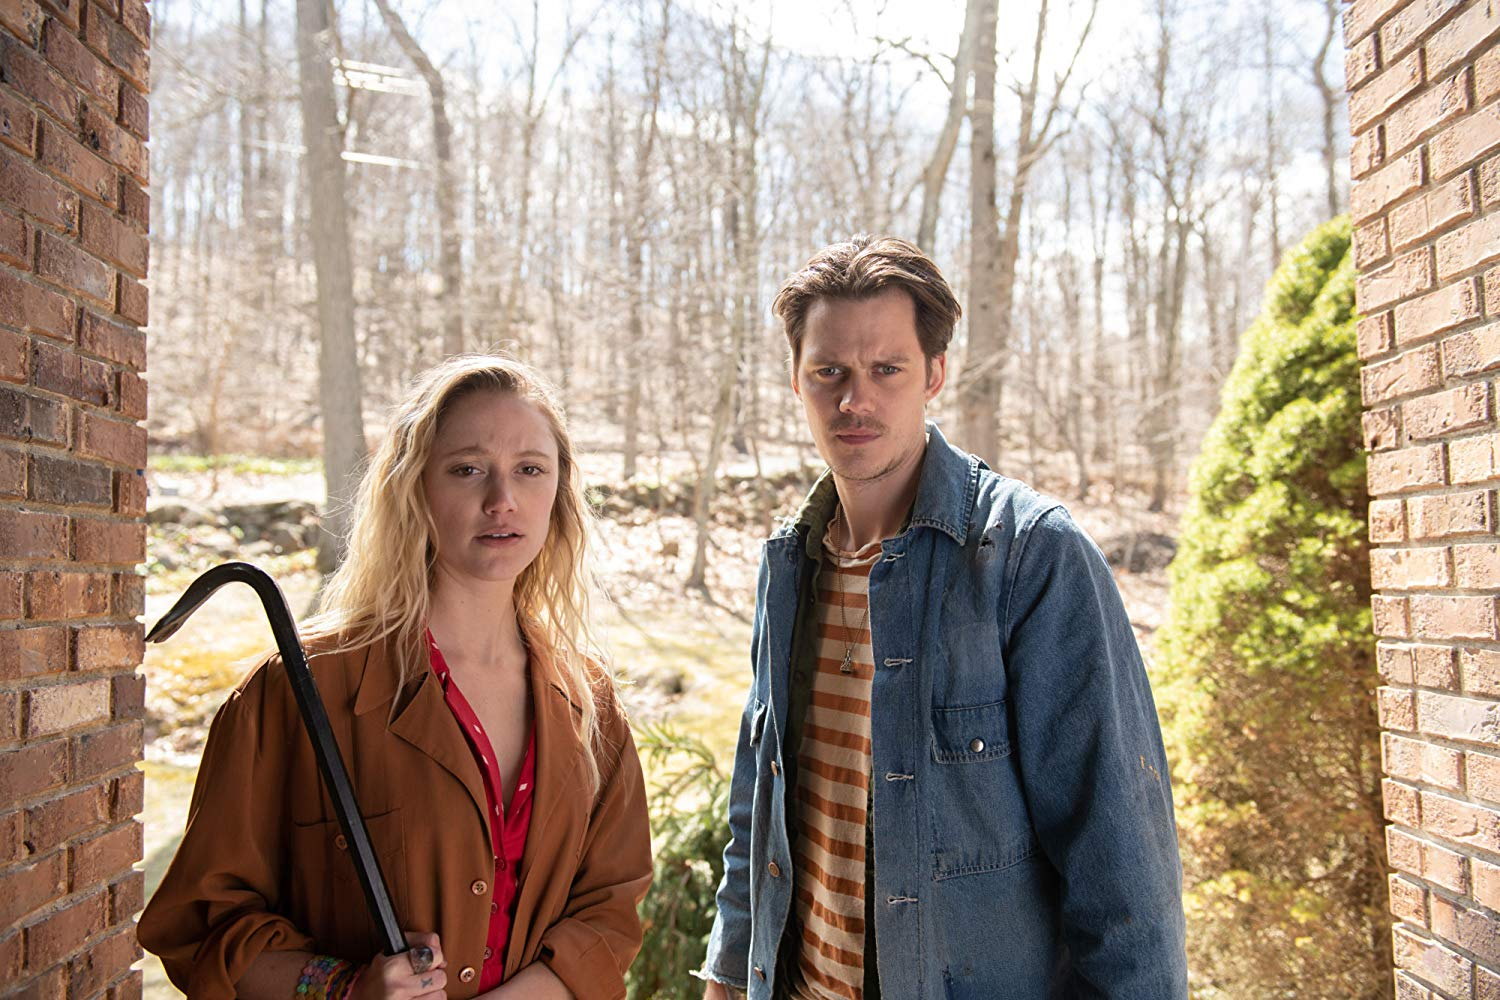 Maika Monroe and Bill Skarsgard in Villains